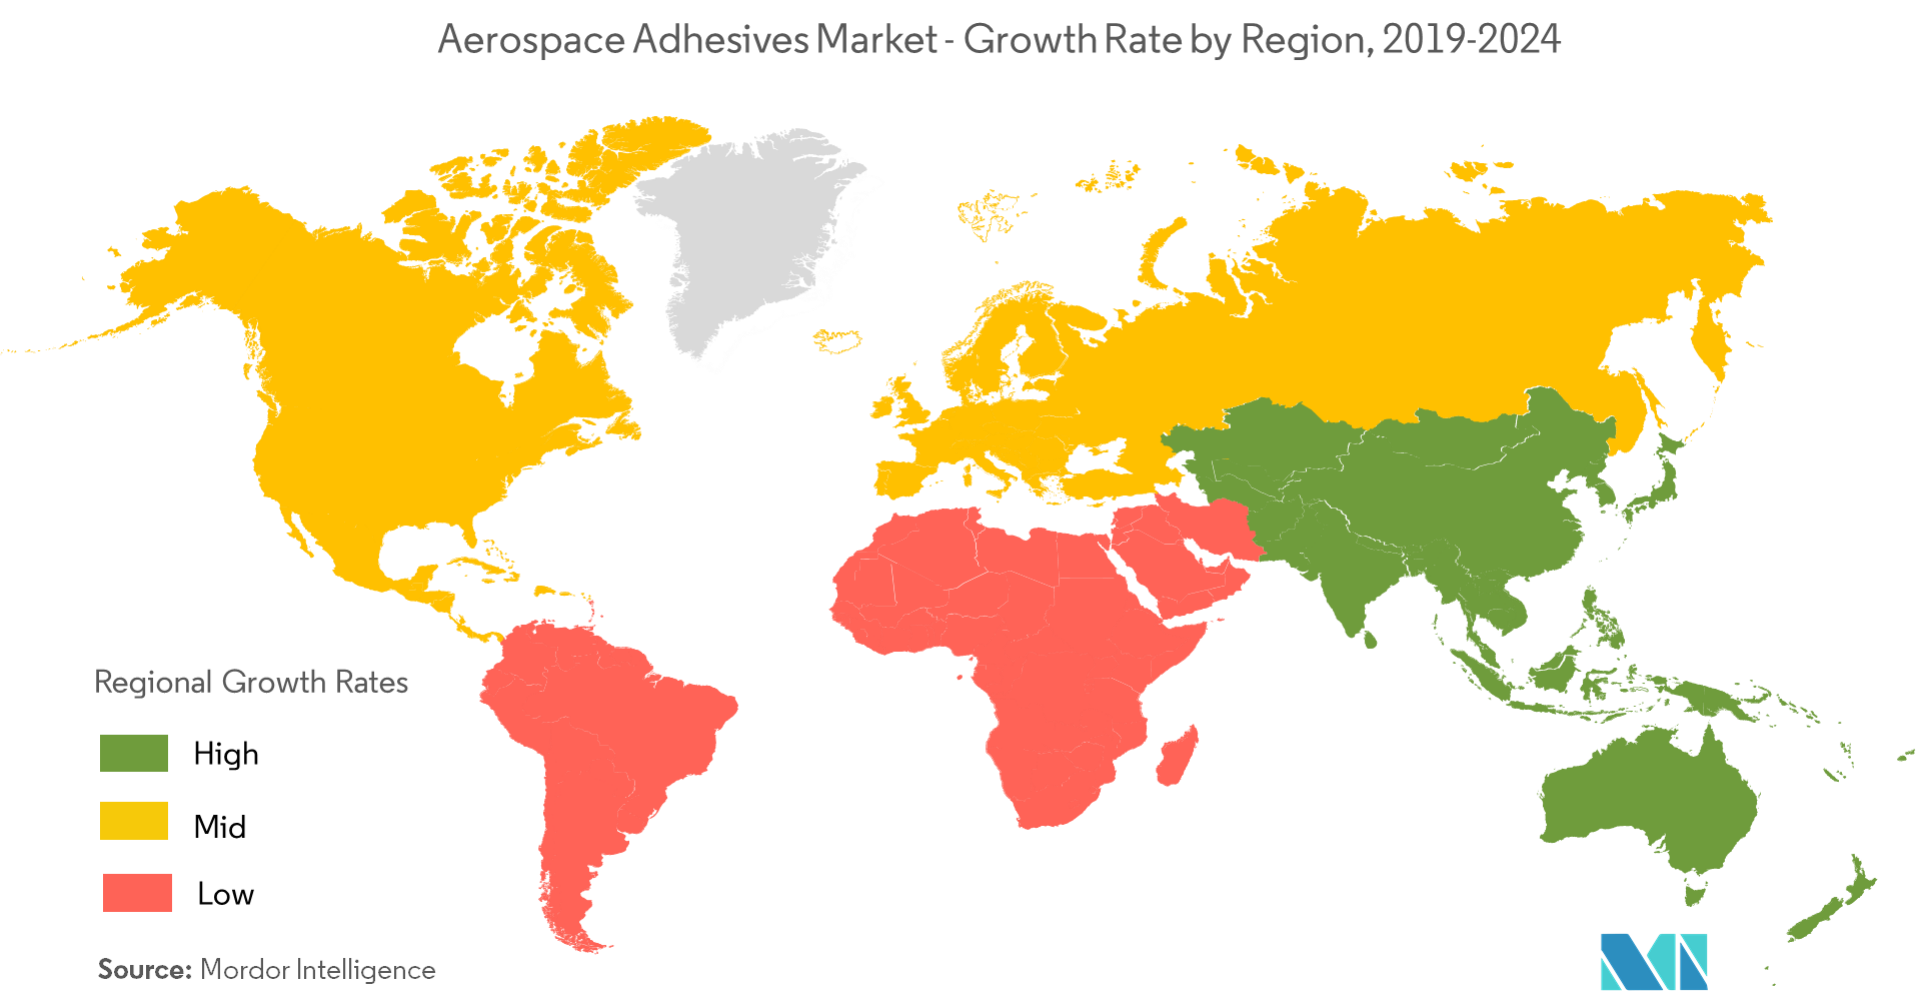 Regional - Aerospace Adhesives Market